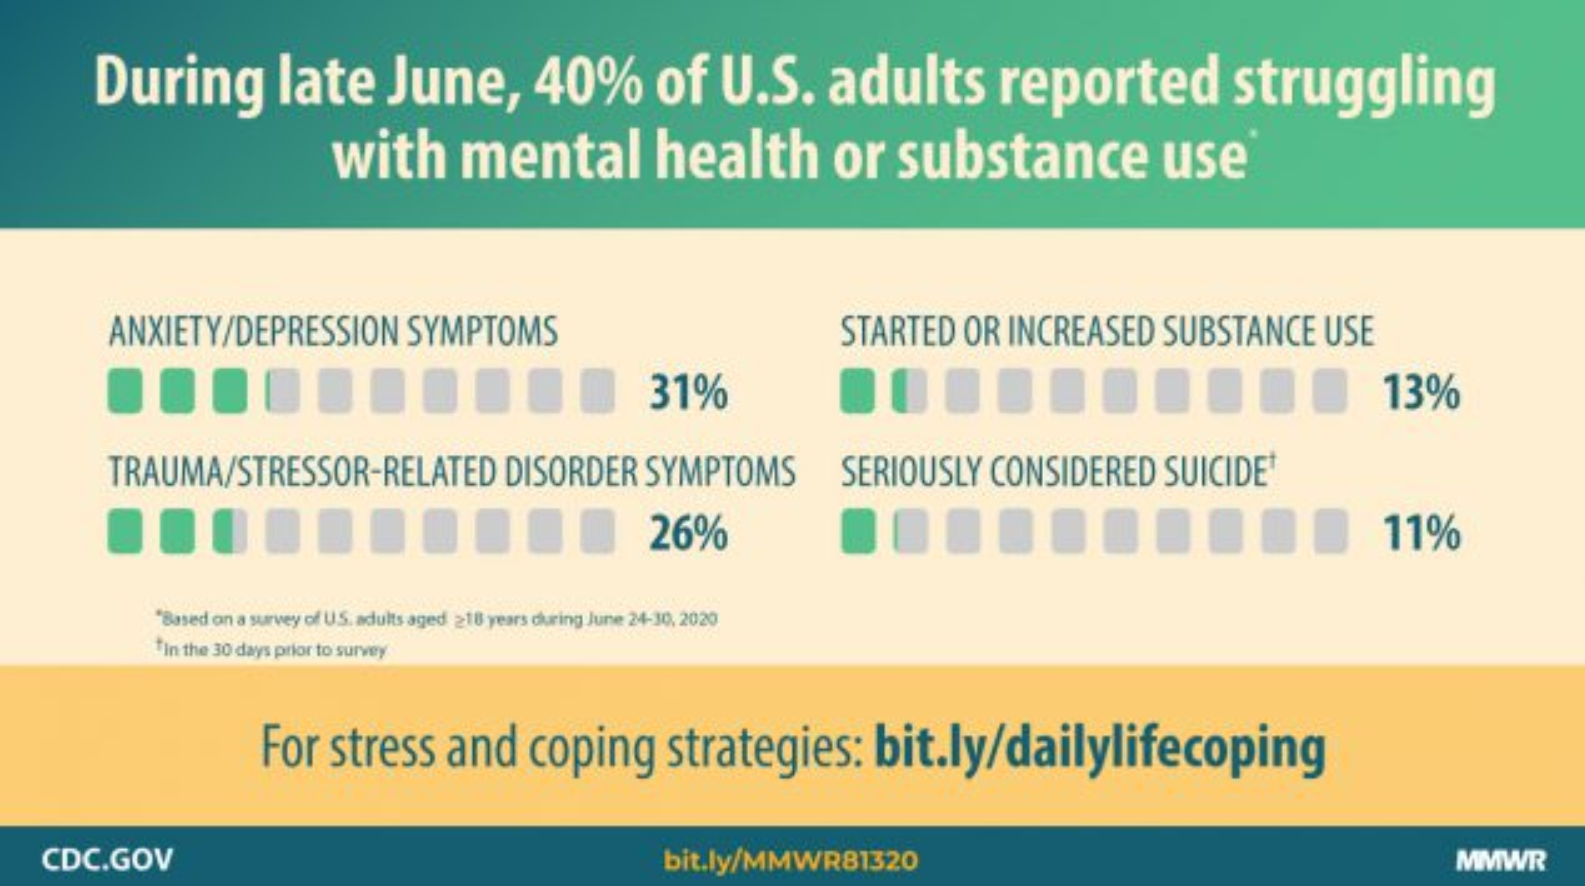 CDC Statistics on anxiety, depression, substance abuse, and suicidality August 2020